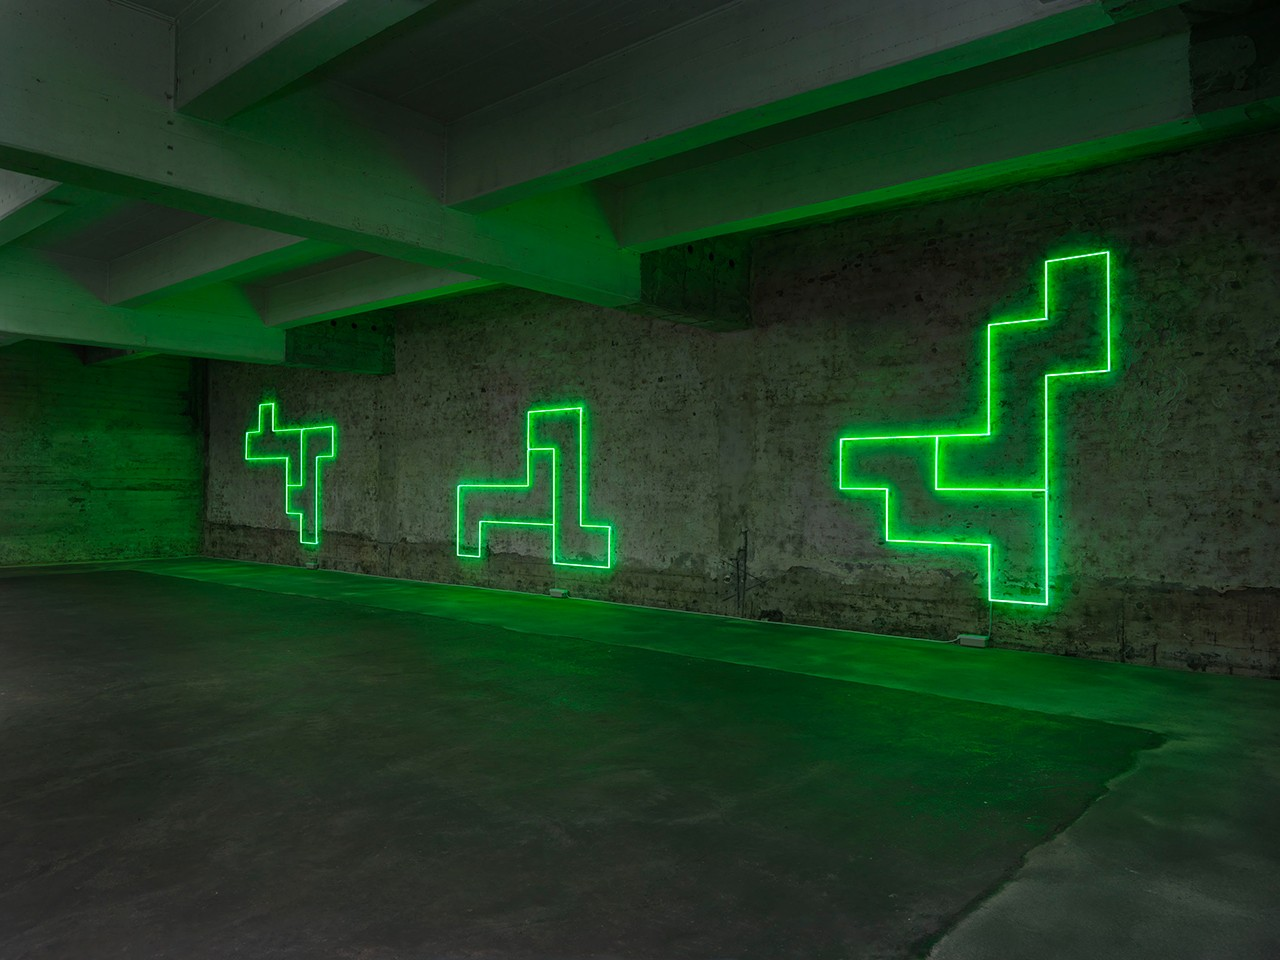 Title of Installation: In Green, in Line, in Pairs: Eleven Double Structures – Unfolding the Cube Material: Neon tubes green (12mm diameter) Dimensions: Dimensions variable in relation to space Exhibition: In situ: A Sequence of Works Berlin Tegel June 1 – 30, 2016